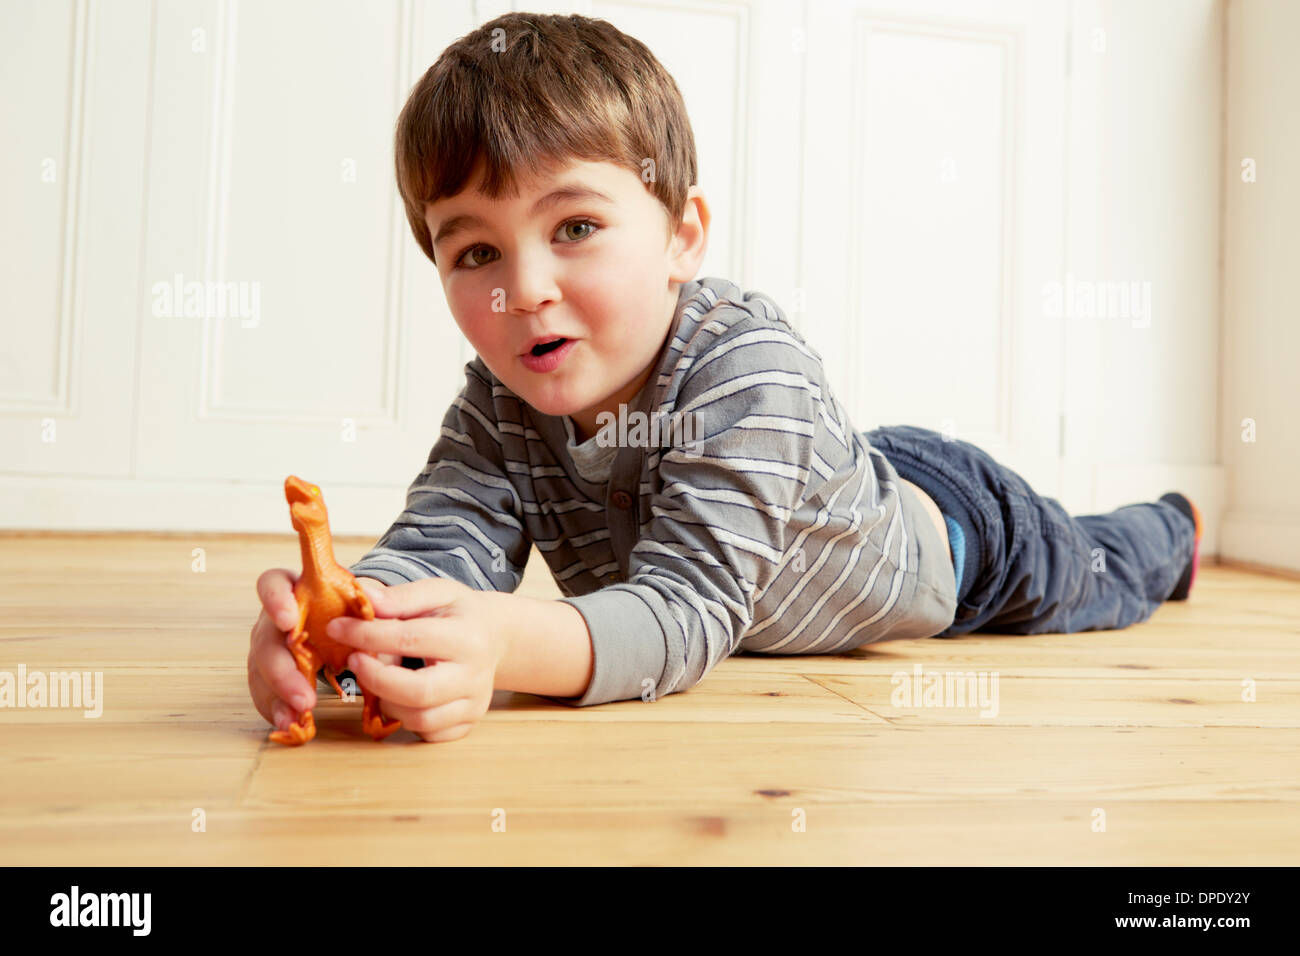 Boy lying on front playing with toy dinosaur - Stock Image